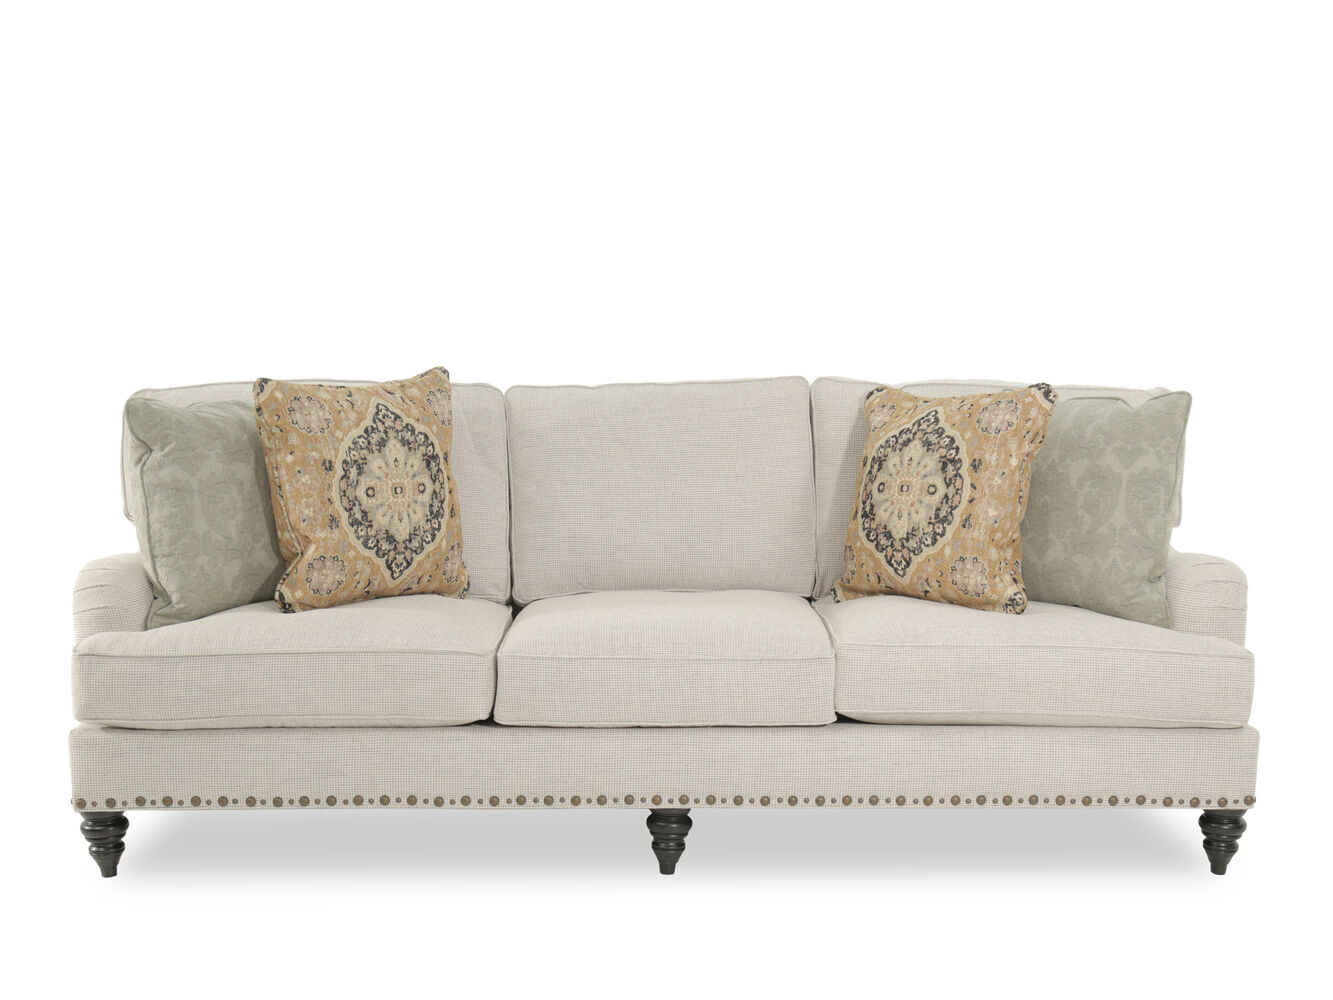 Broyhill esther fabric sofa mathis brothers furniture for Mathis brothers living room furniture